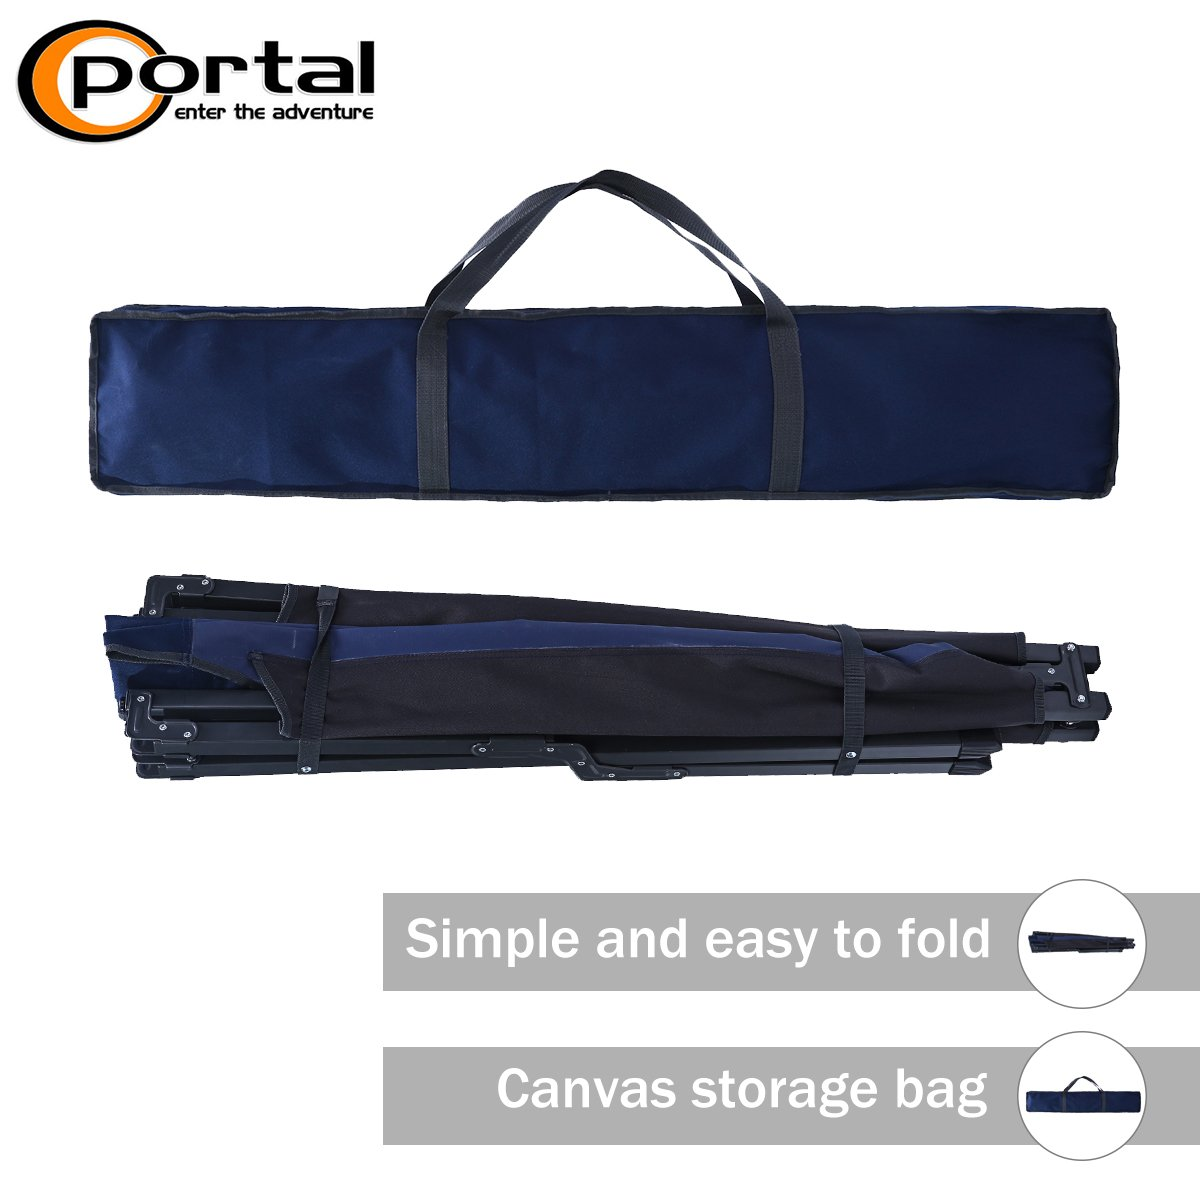 PORTAL Folding Portable Camping Cot 83 XL Pack-Away Tent Sleeping Cot Bed with Side Pockets Carry Bag and Side Pockets Included